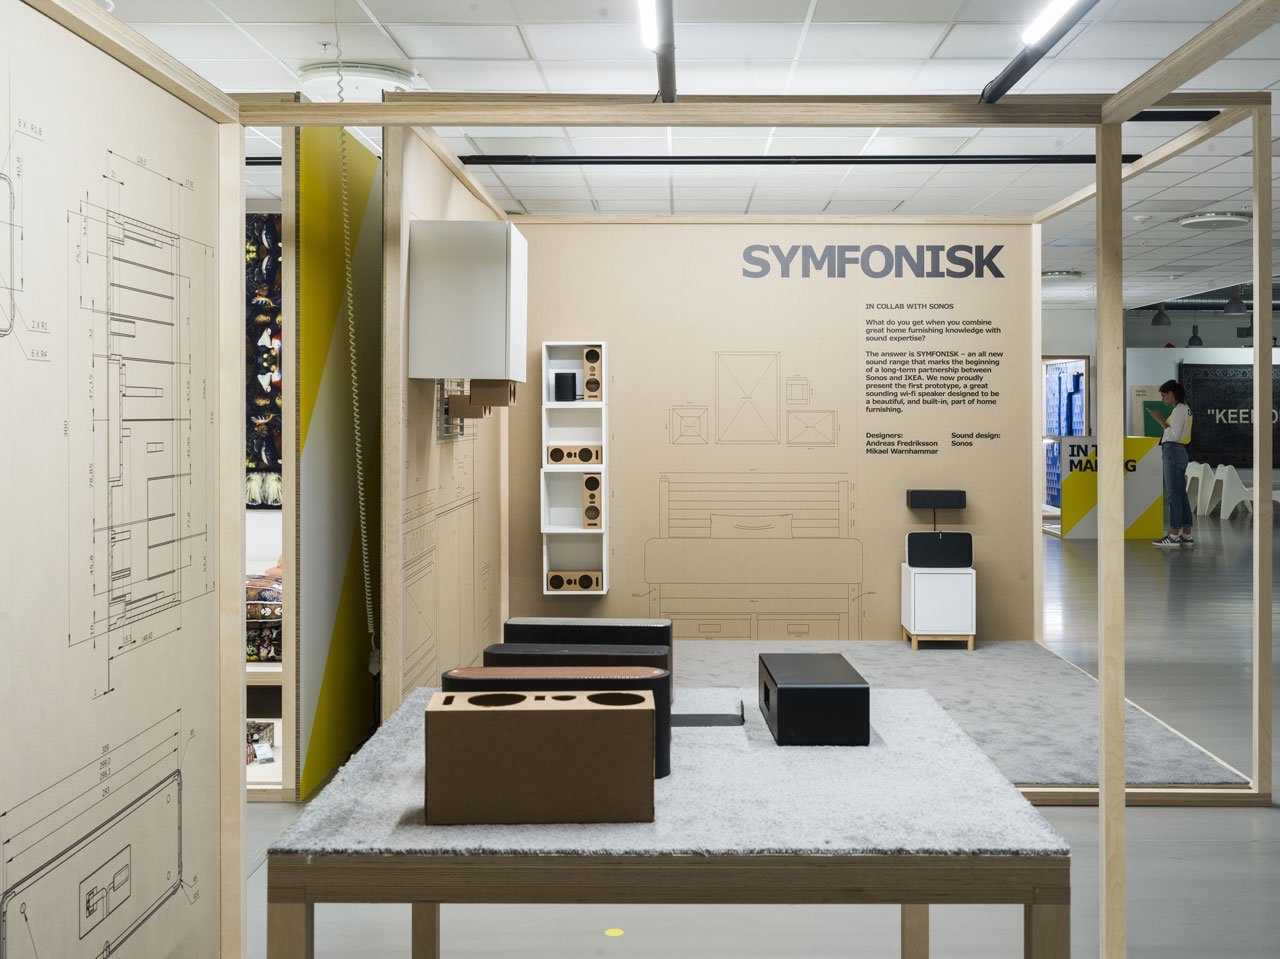 Haben Ikea Möbel Gute Qualität Vowe Dot Net Ikea To Launch Sonos Powered Symfonisk In August